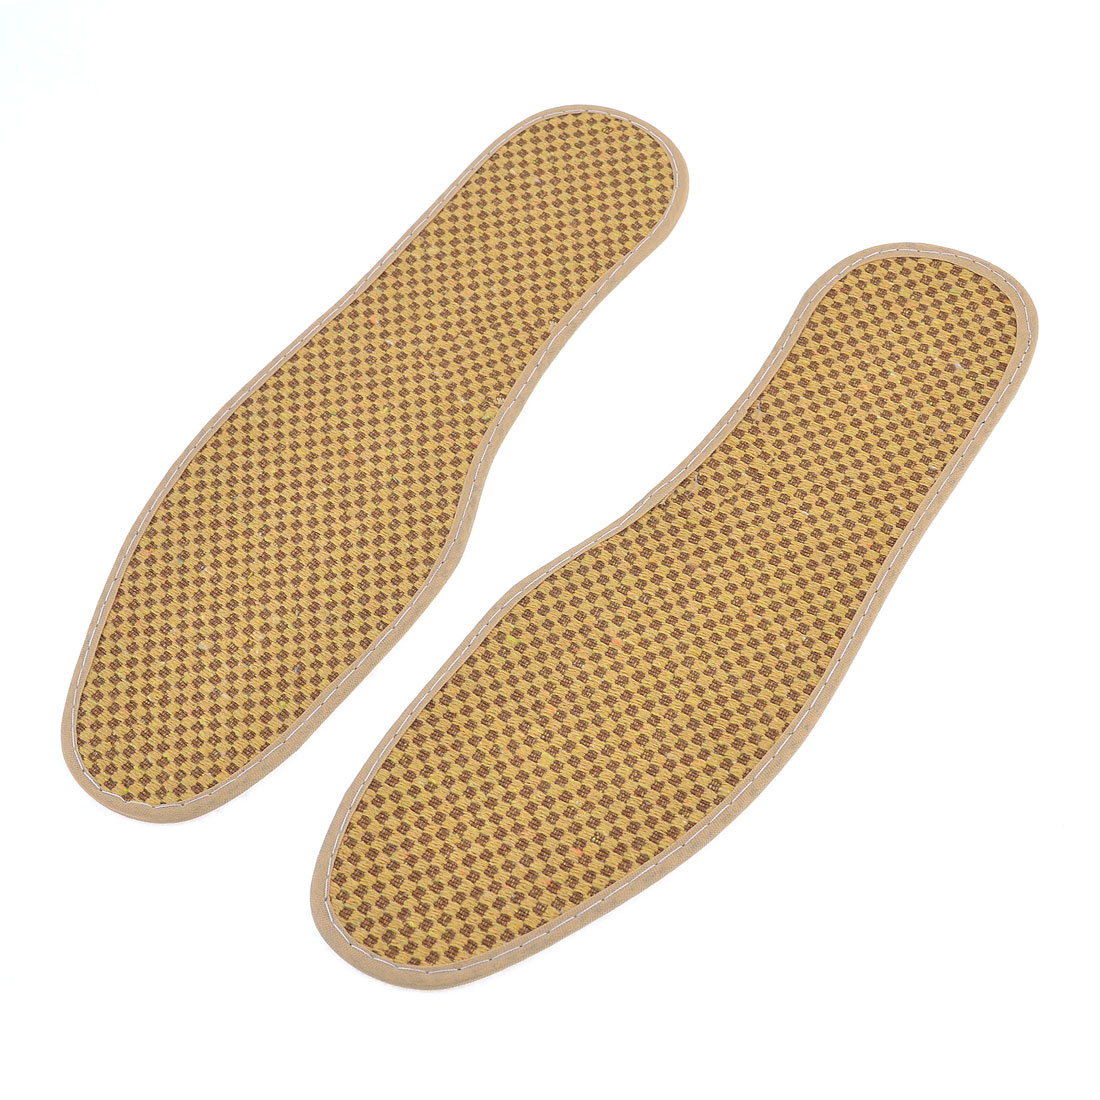 Pair Rhombus Print Textured Nonslip Shoe Pads Insoles UK Size 7.5 Yellow Brown